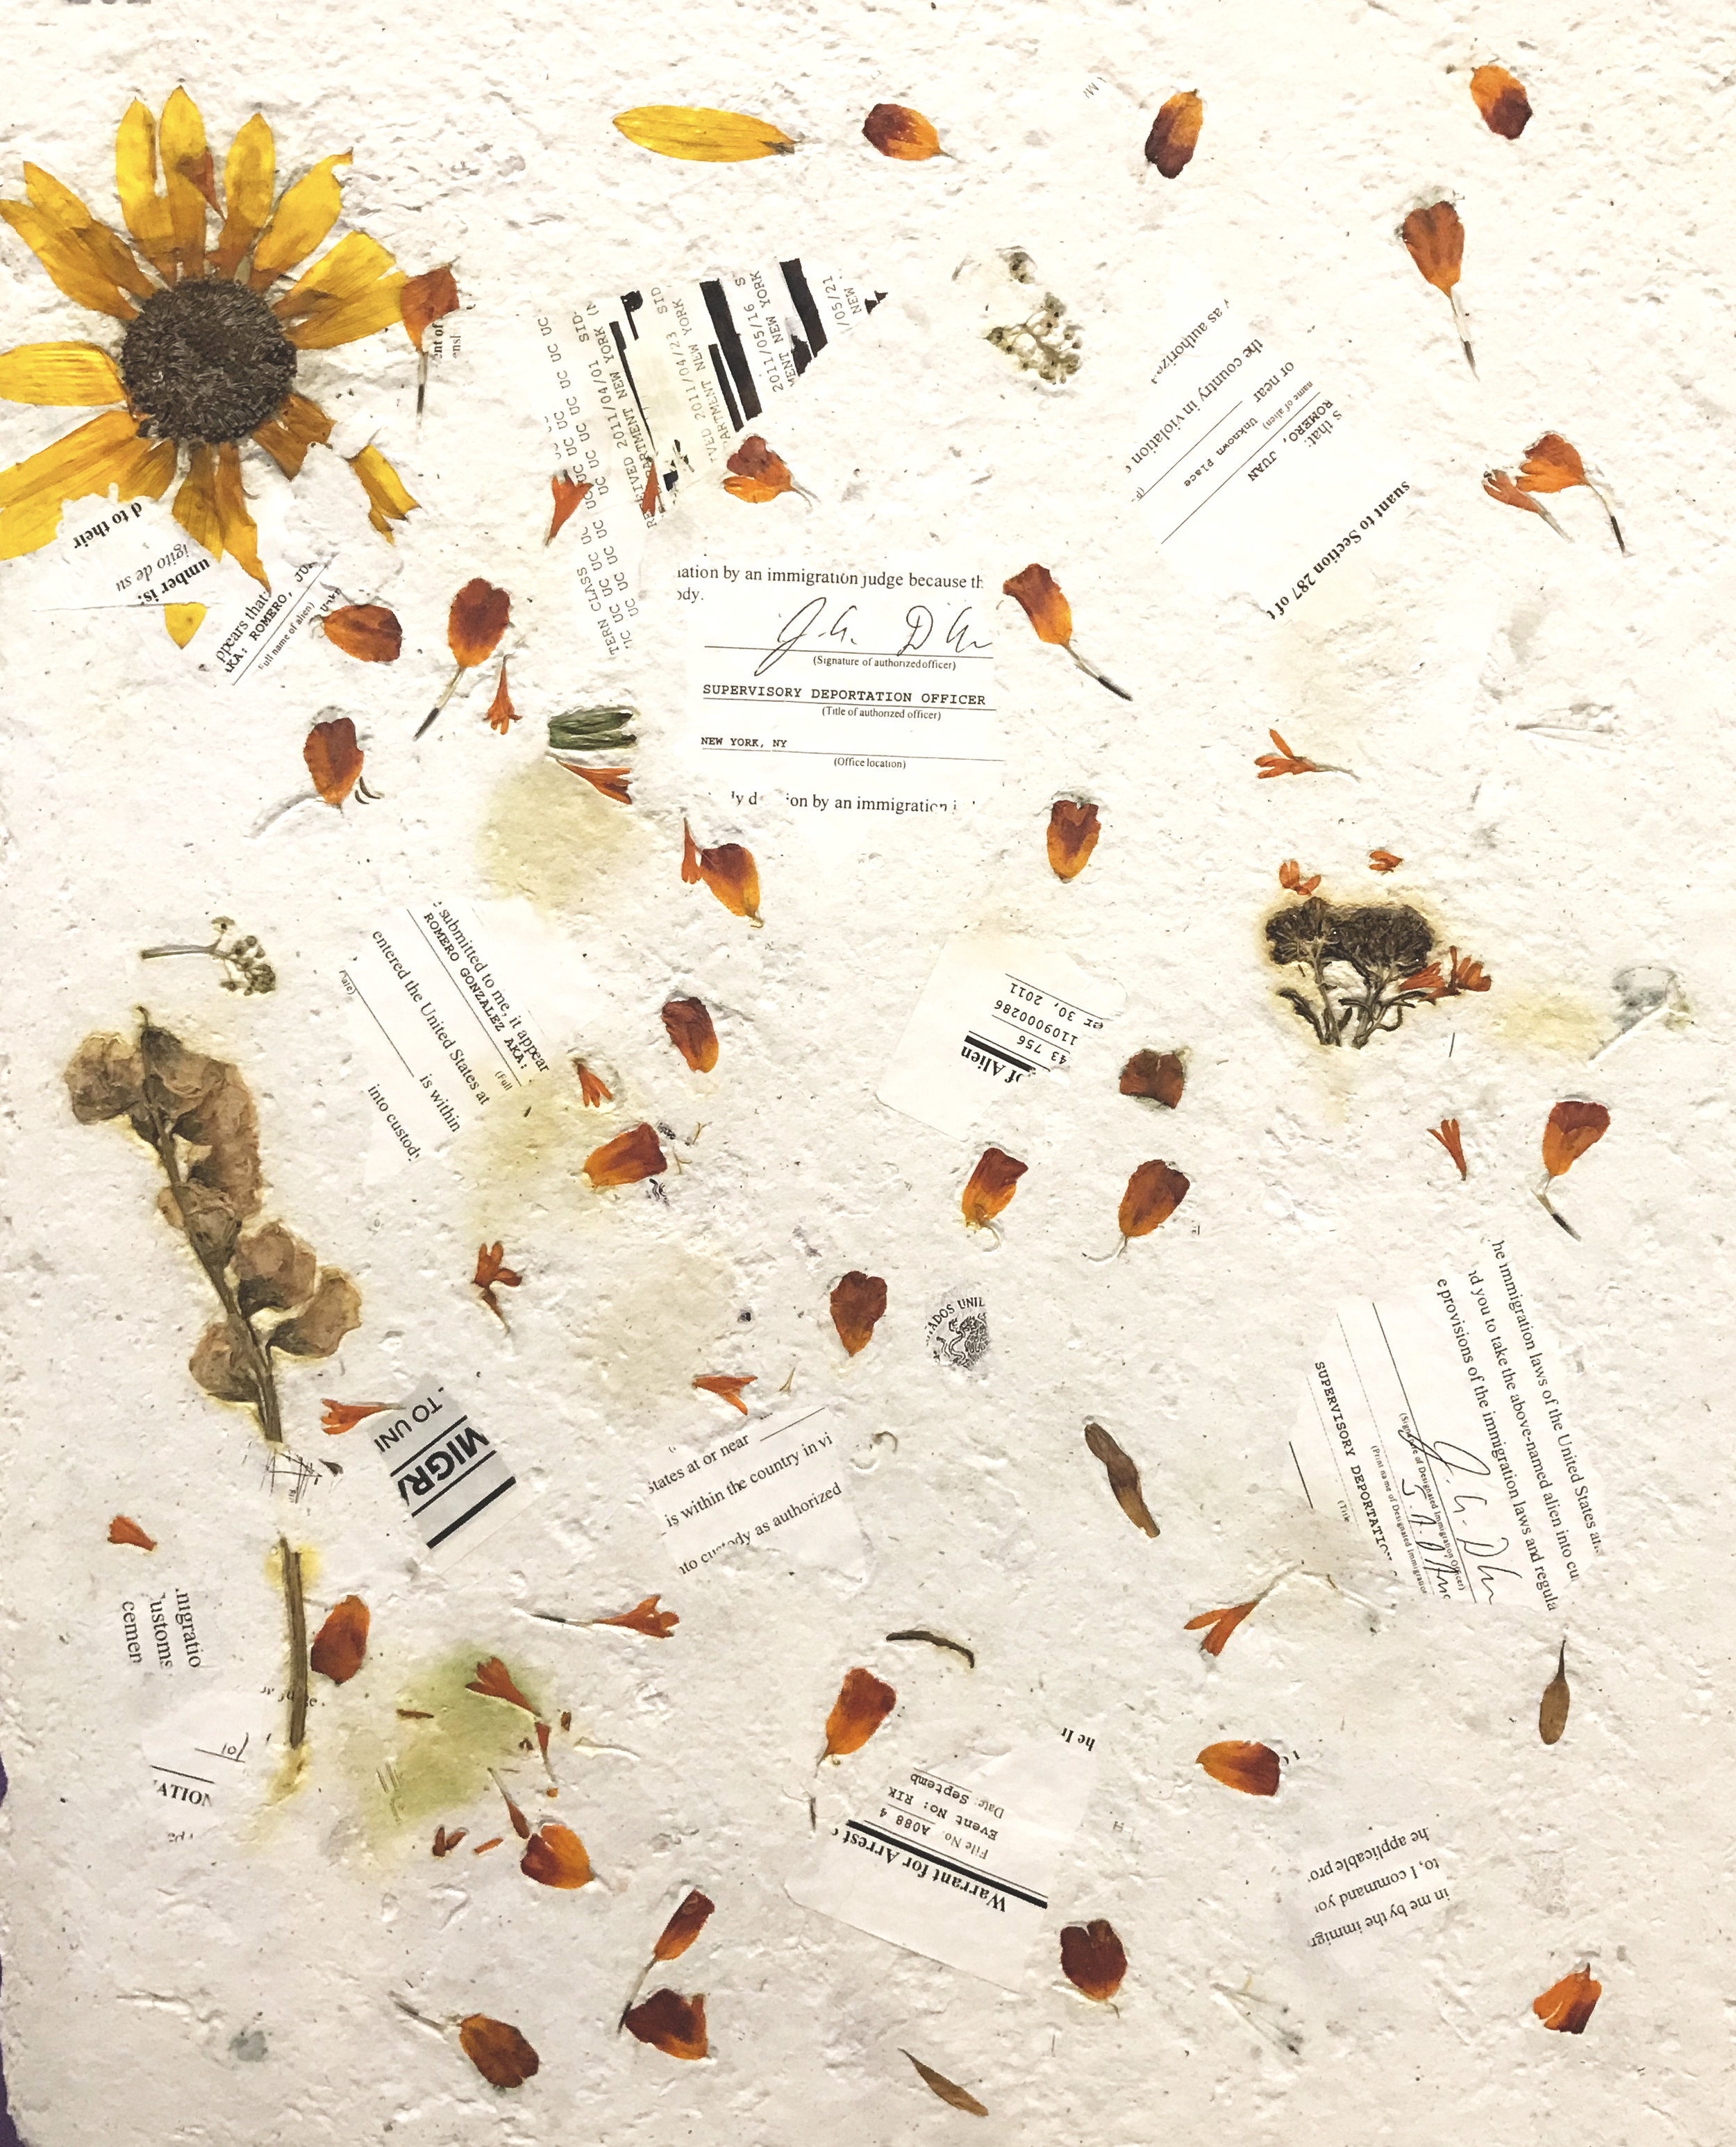 Artwork made in the first phase of the project by:  Lupita R. - handmade paper from abaca, deportation documents, plants from South Bronx, and military uniforms